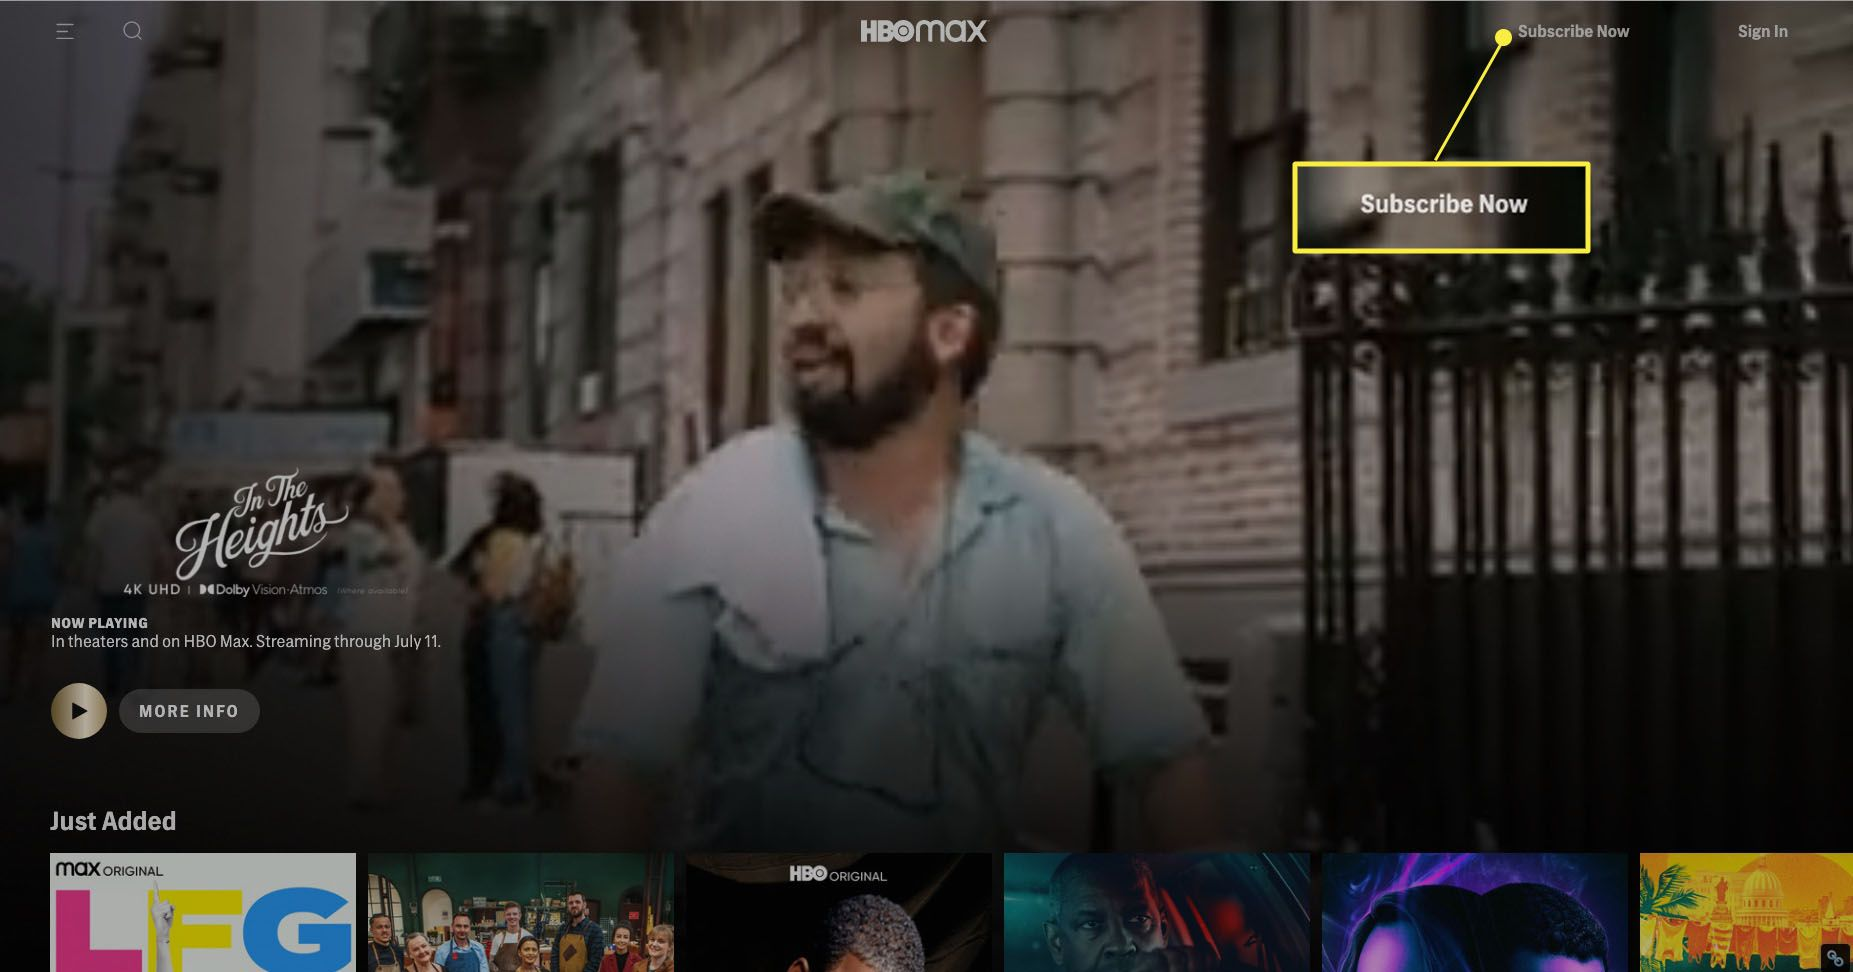 HBO Max website with Subscribe Now highlighted